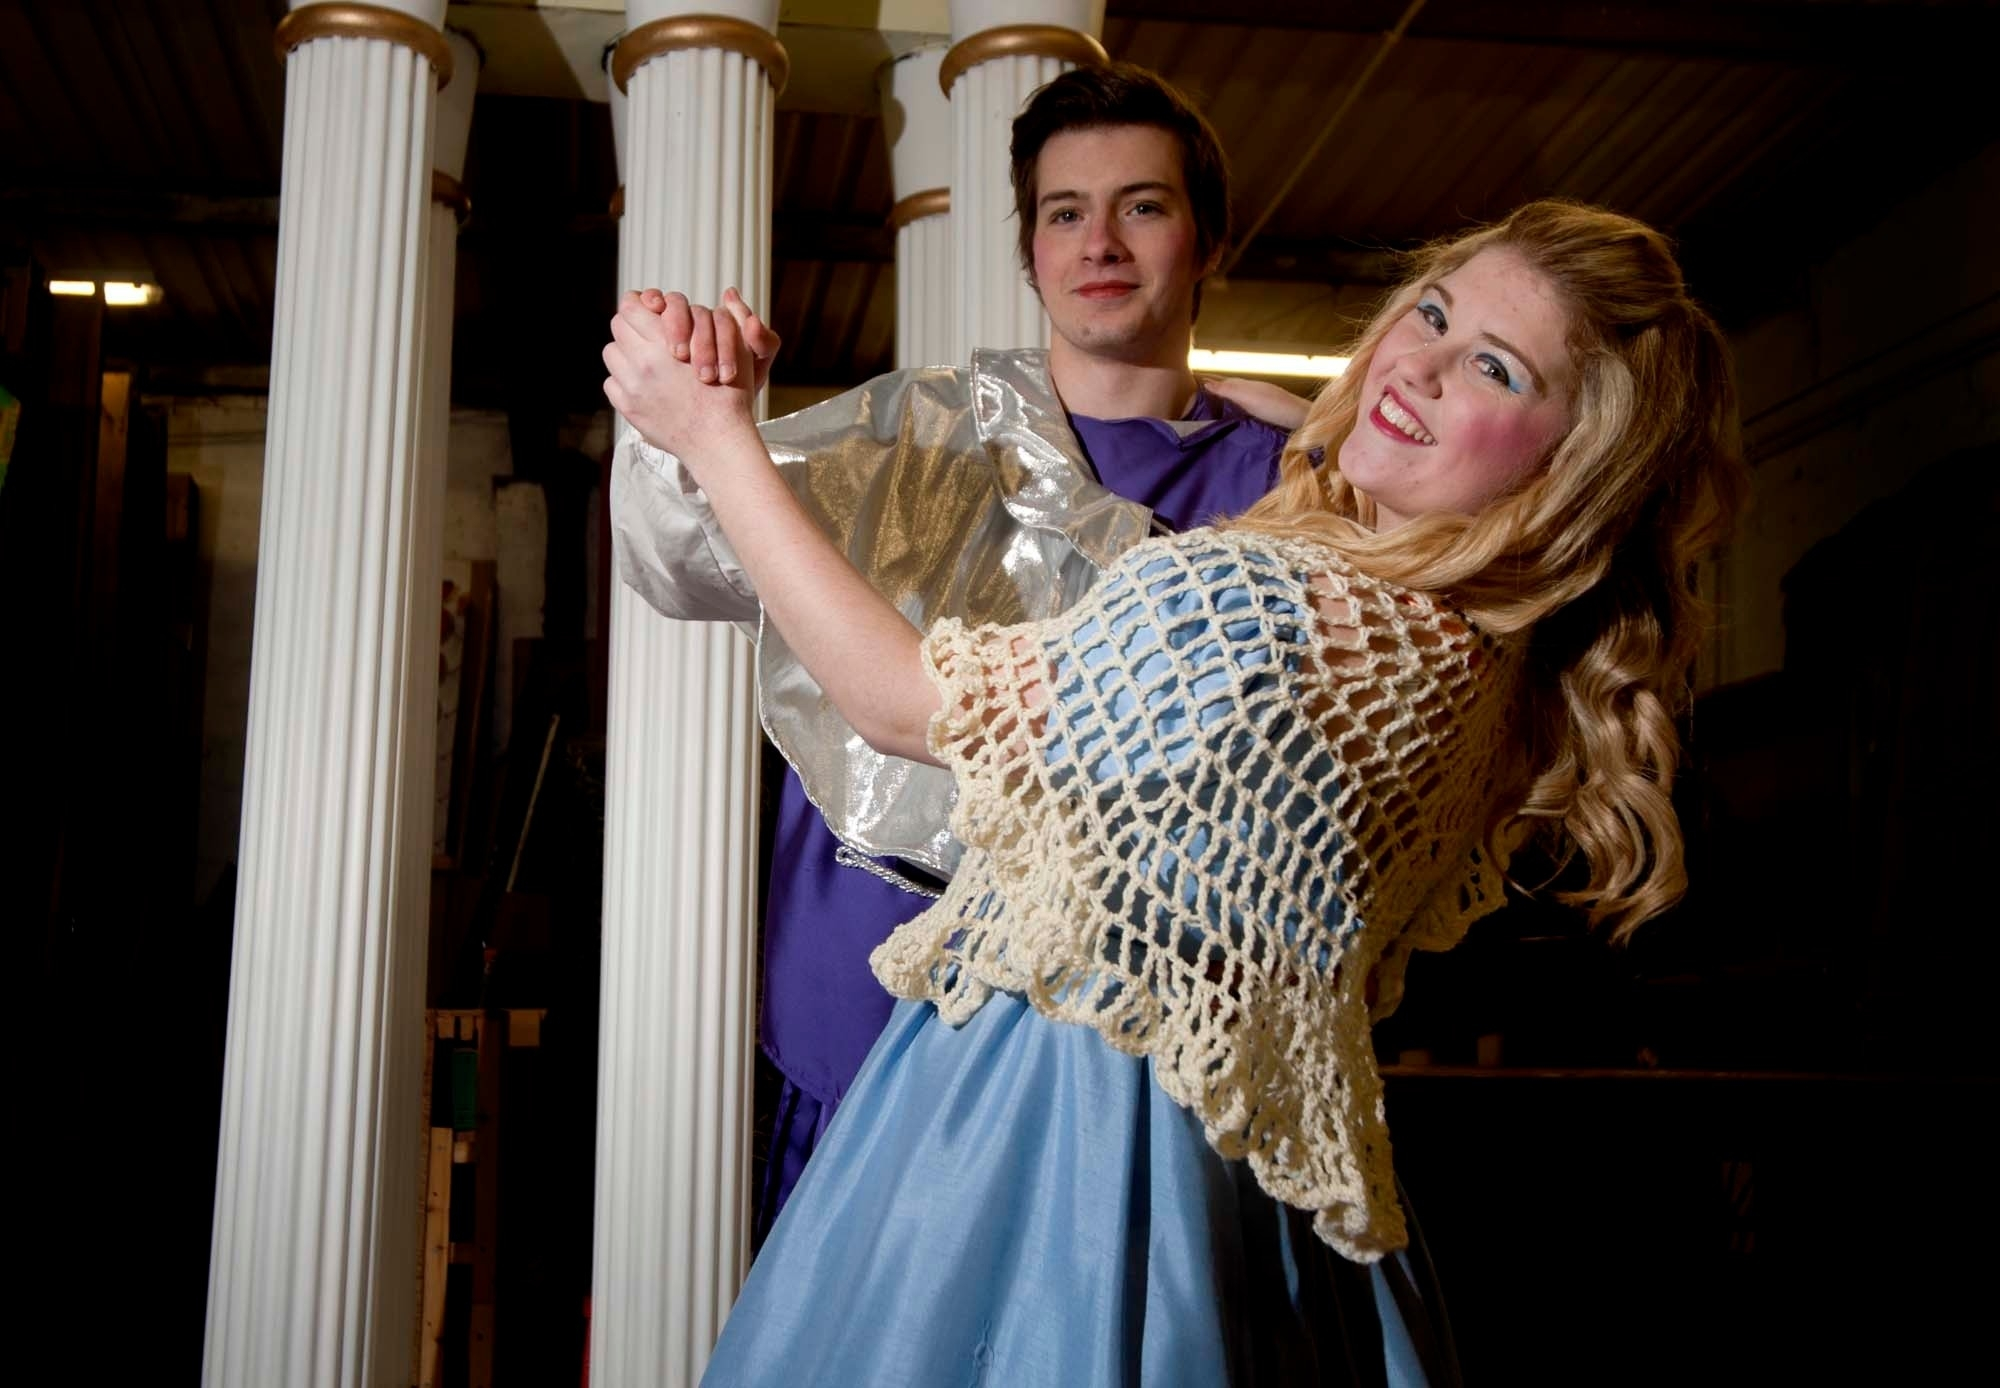 Bryony Munro will play Cinderella and Mitch Carpenter will be her Prince Charming